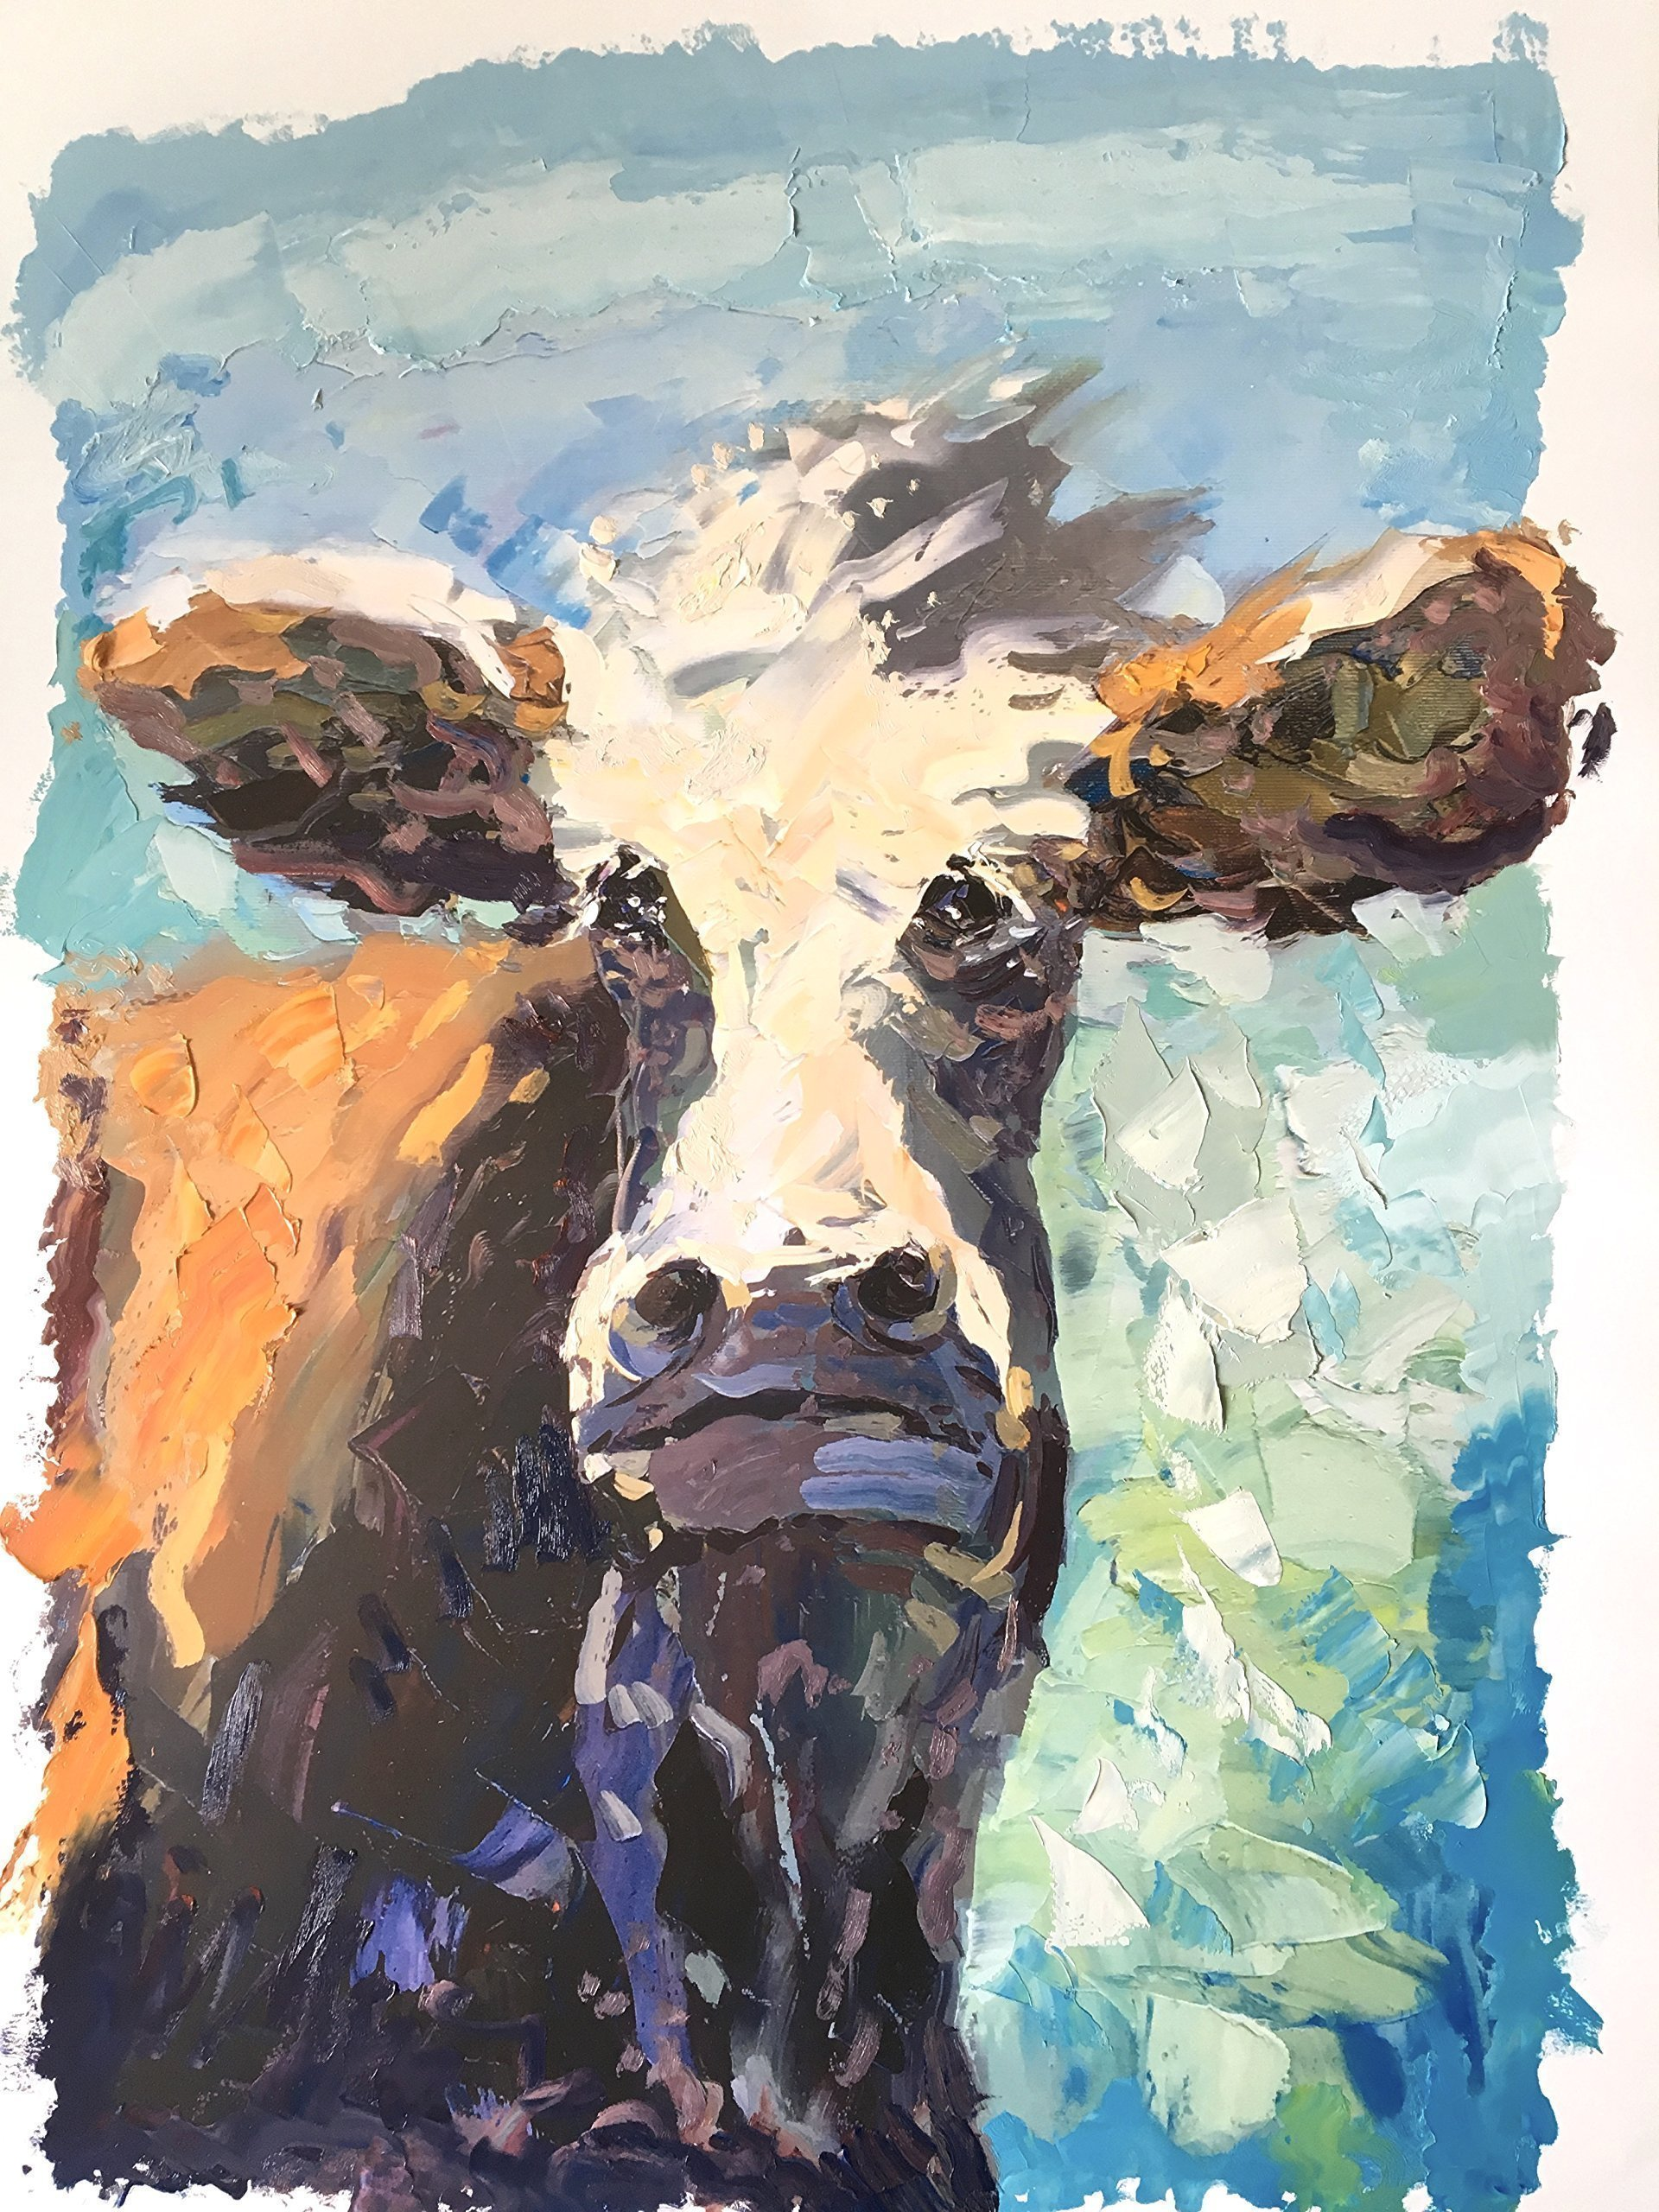 Agostino Veroni - Cow Art Oil Paper Mixed Media Face Brown Animal Folk Colorful Portrait Large Original Country Farmhouse Handmade Wall Art Home Decor Wall Rustic Gifts for Him Christmas Present